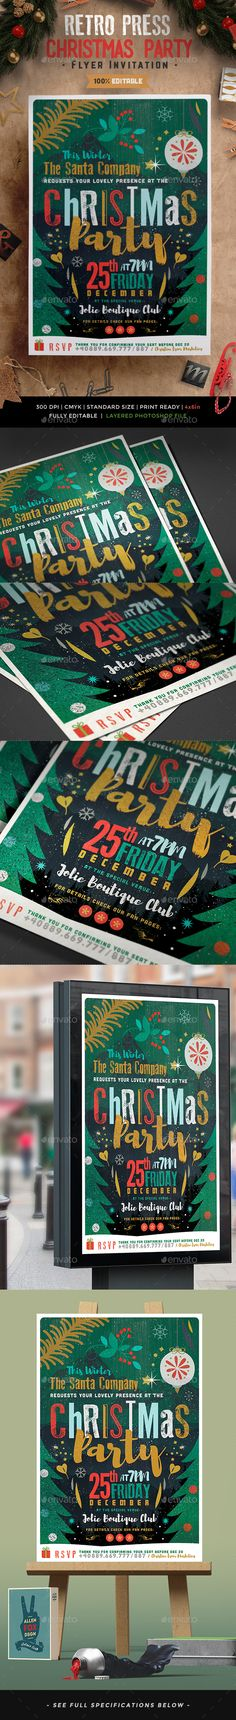 176 best Some design ideas images on Pinterest | Christmas images ...